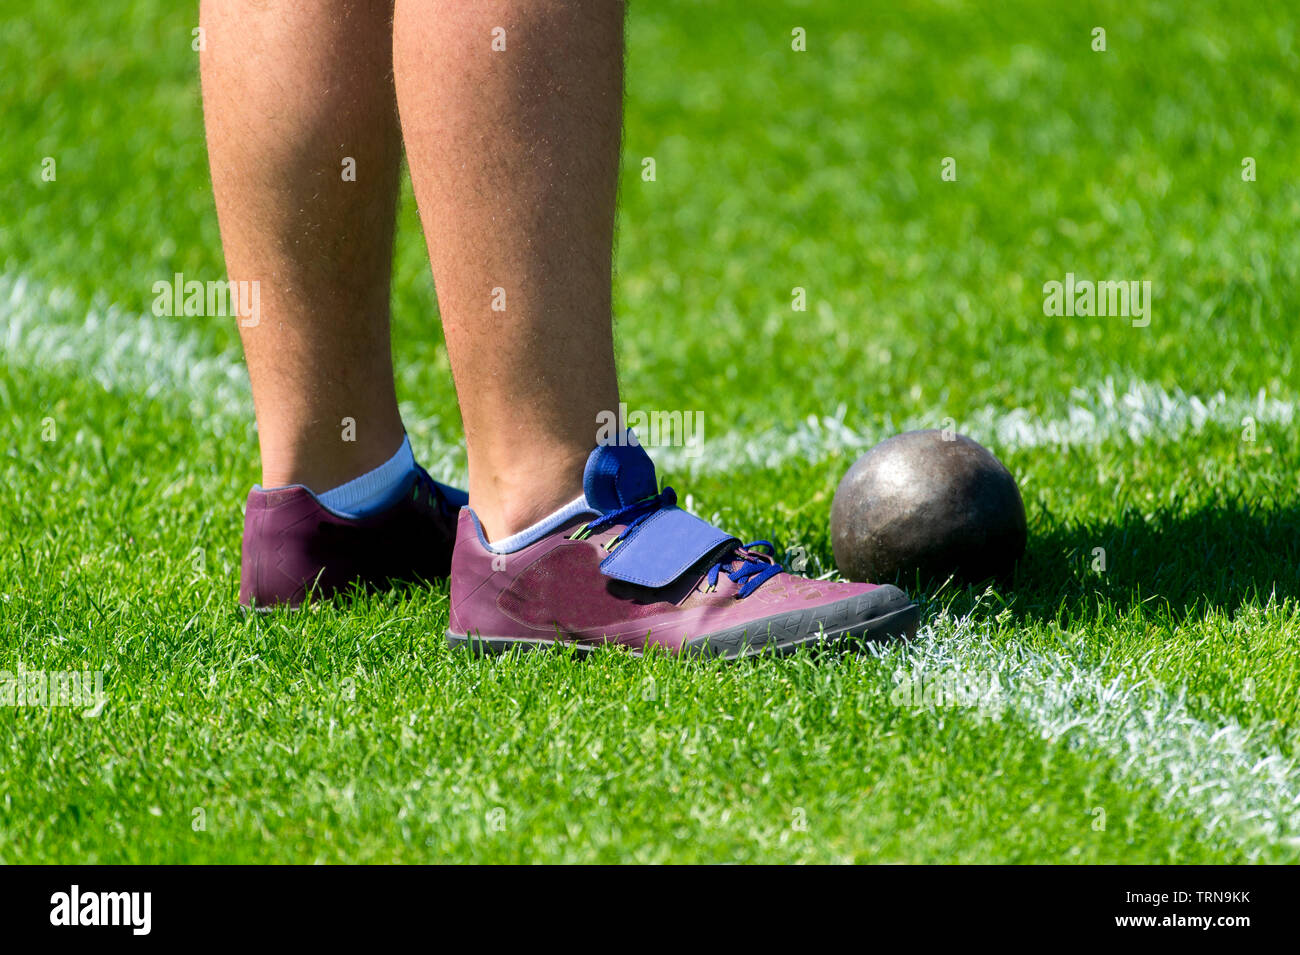 Sportsman in shot put sector on competition - Stock Image